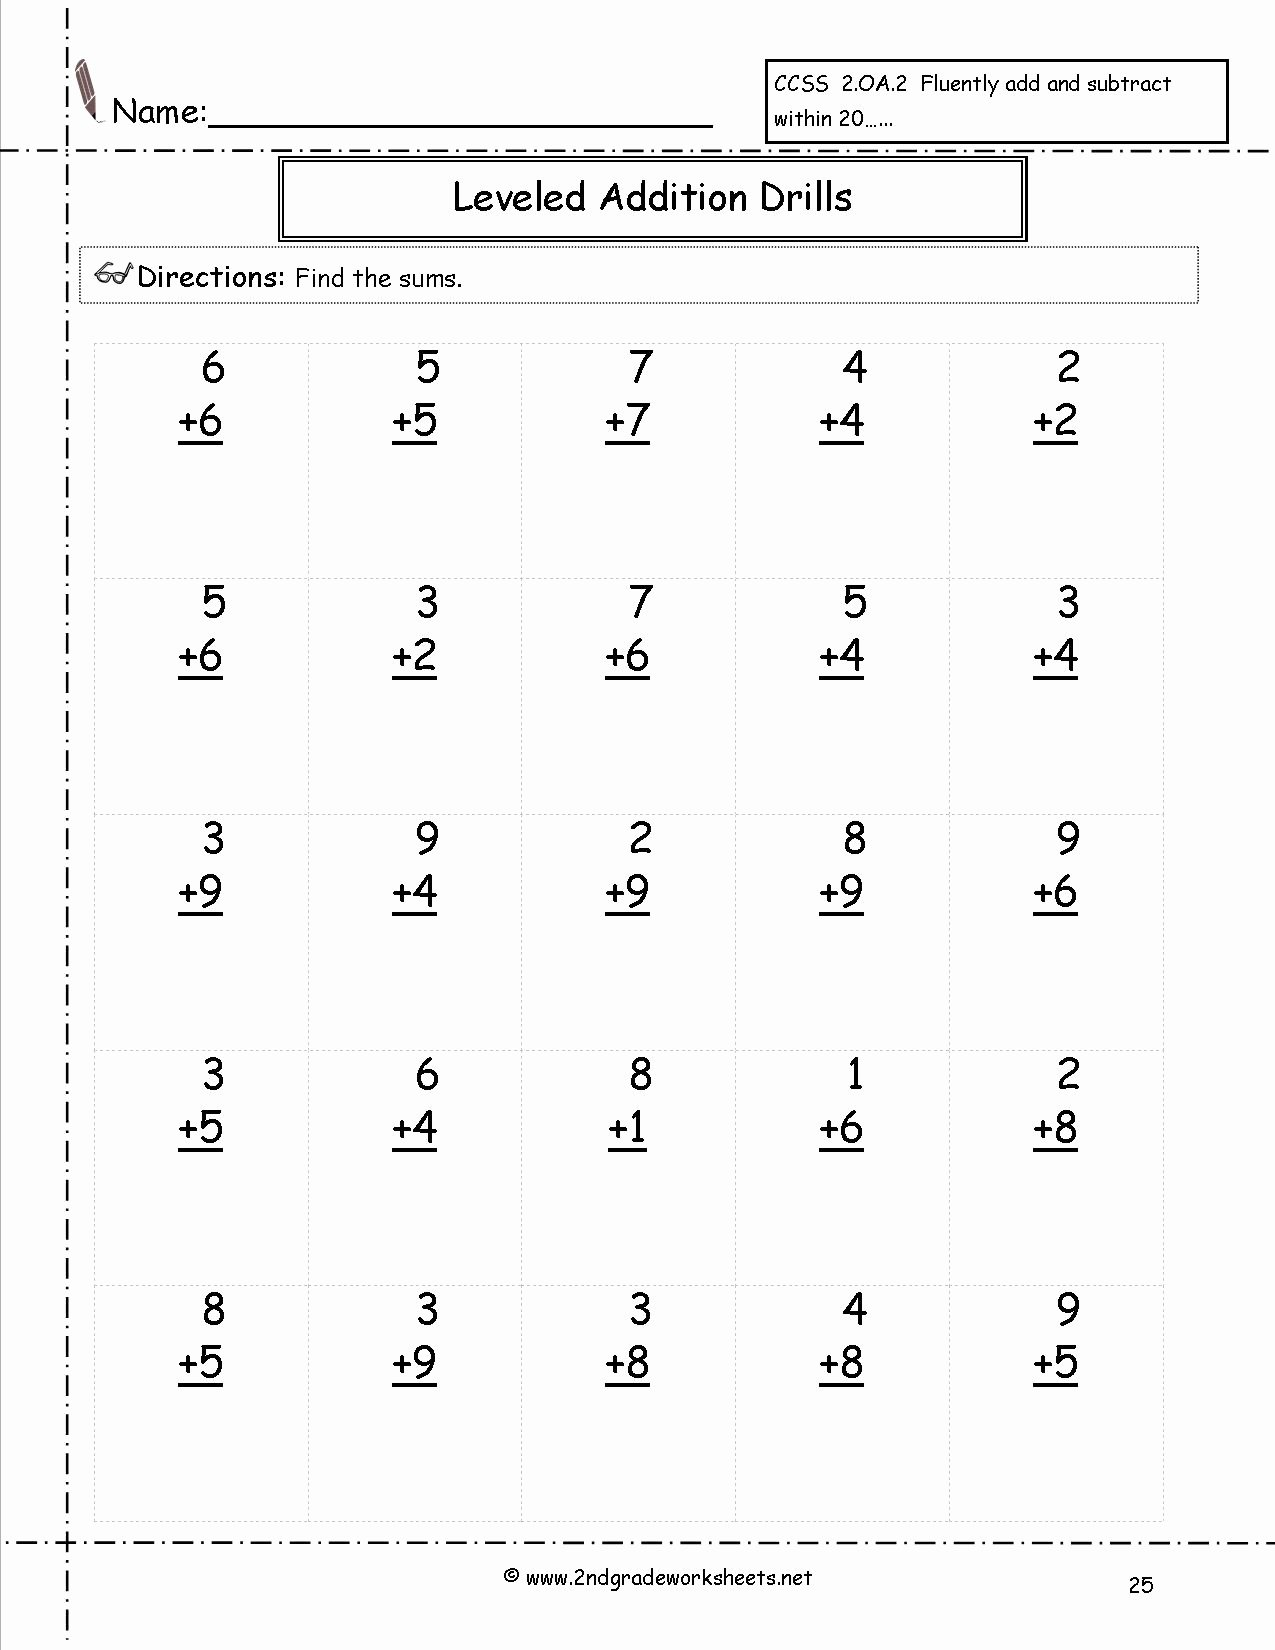 free mathts and printouts addition puzzles for 3rd grade problems spelling words printable